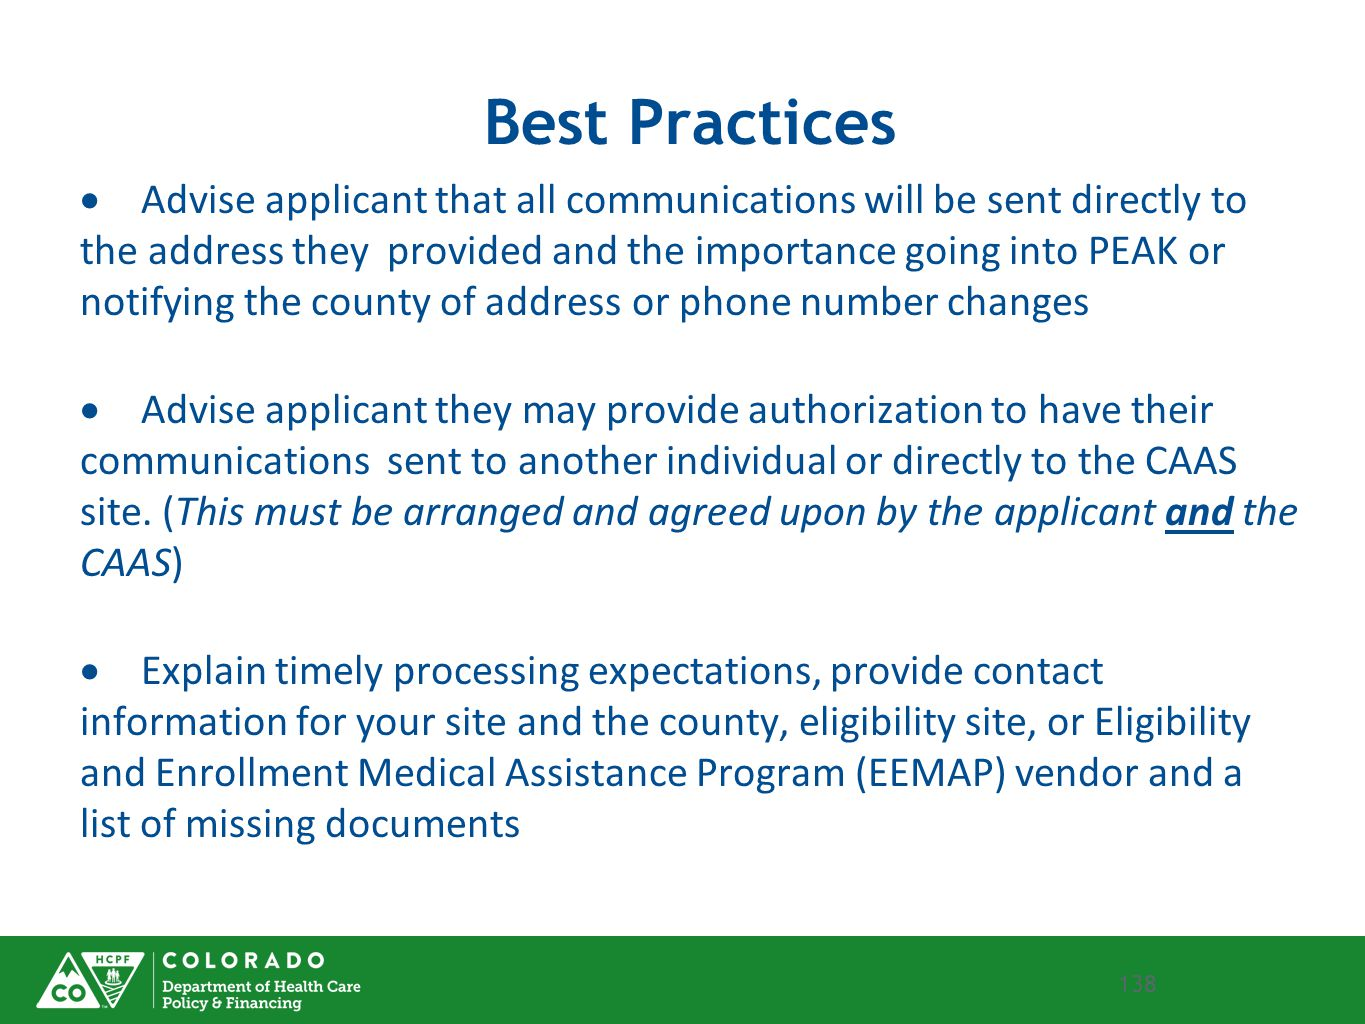 138 Best Practices  Advise applicant that all communications will be sent directly to the address they provided and the importance going into PEAK or notifying the county of address or phone number changes  Advise applicant they may provide authorization to have their communications sent to another individual or directly to the CAAS site.